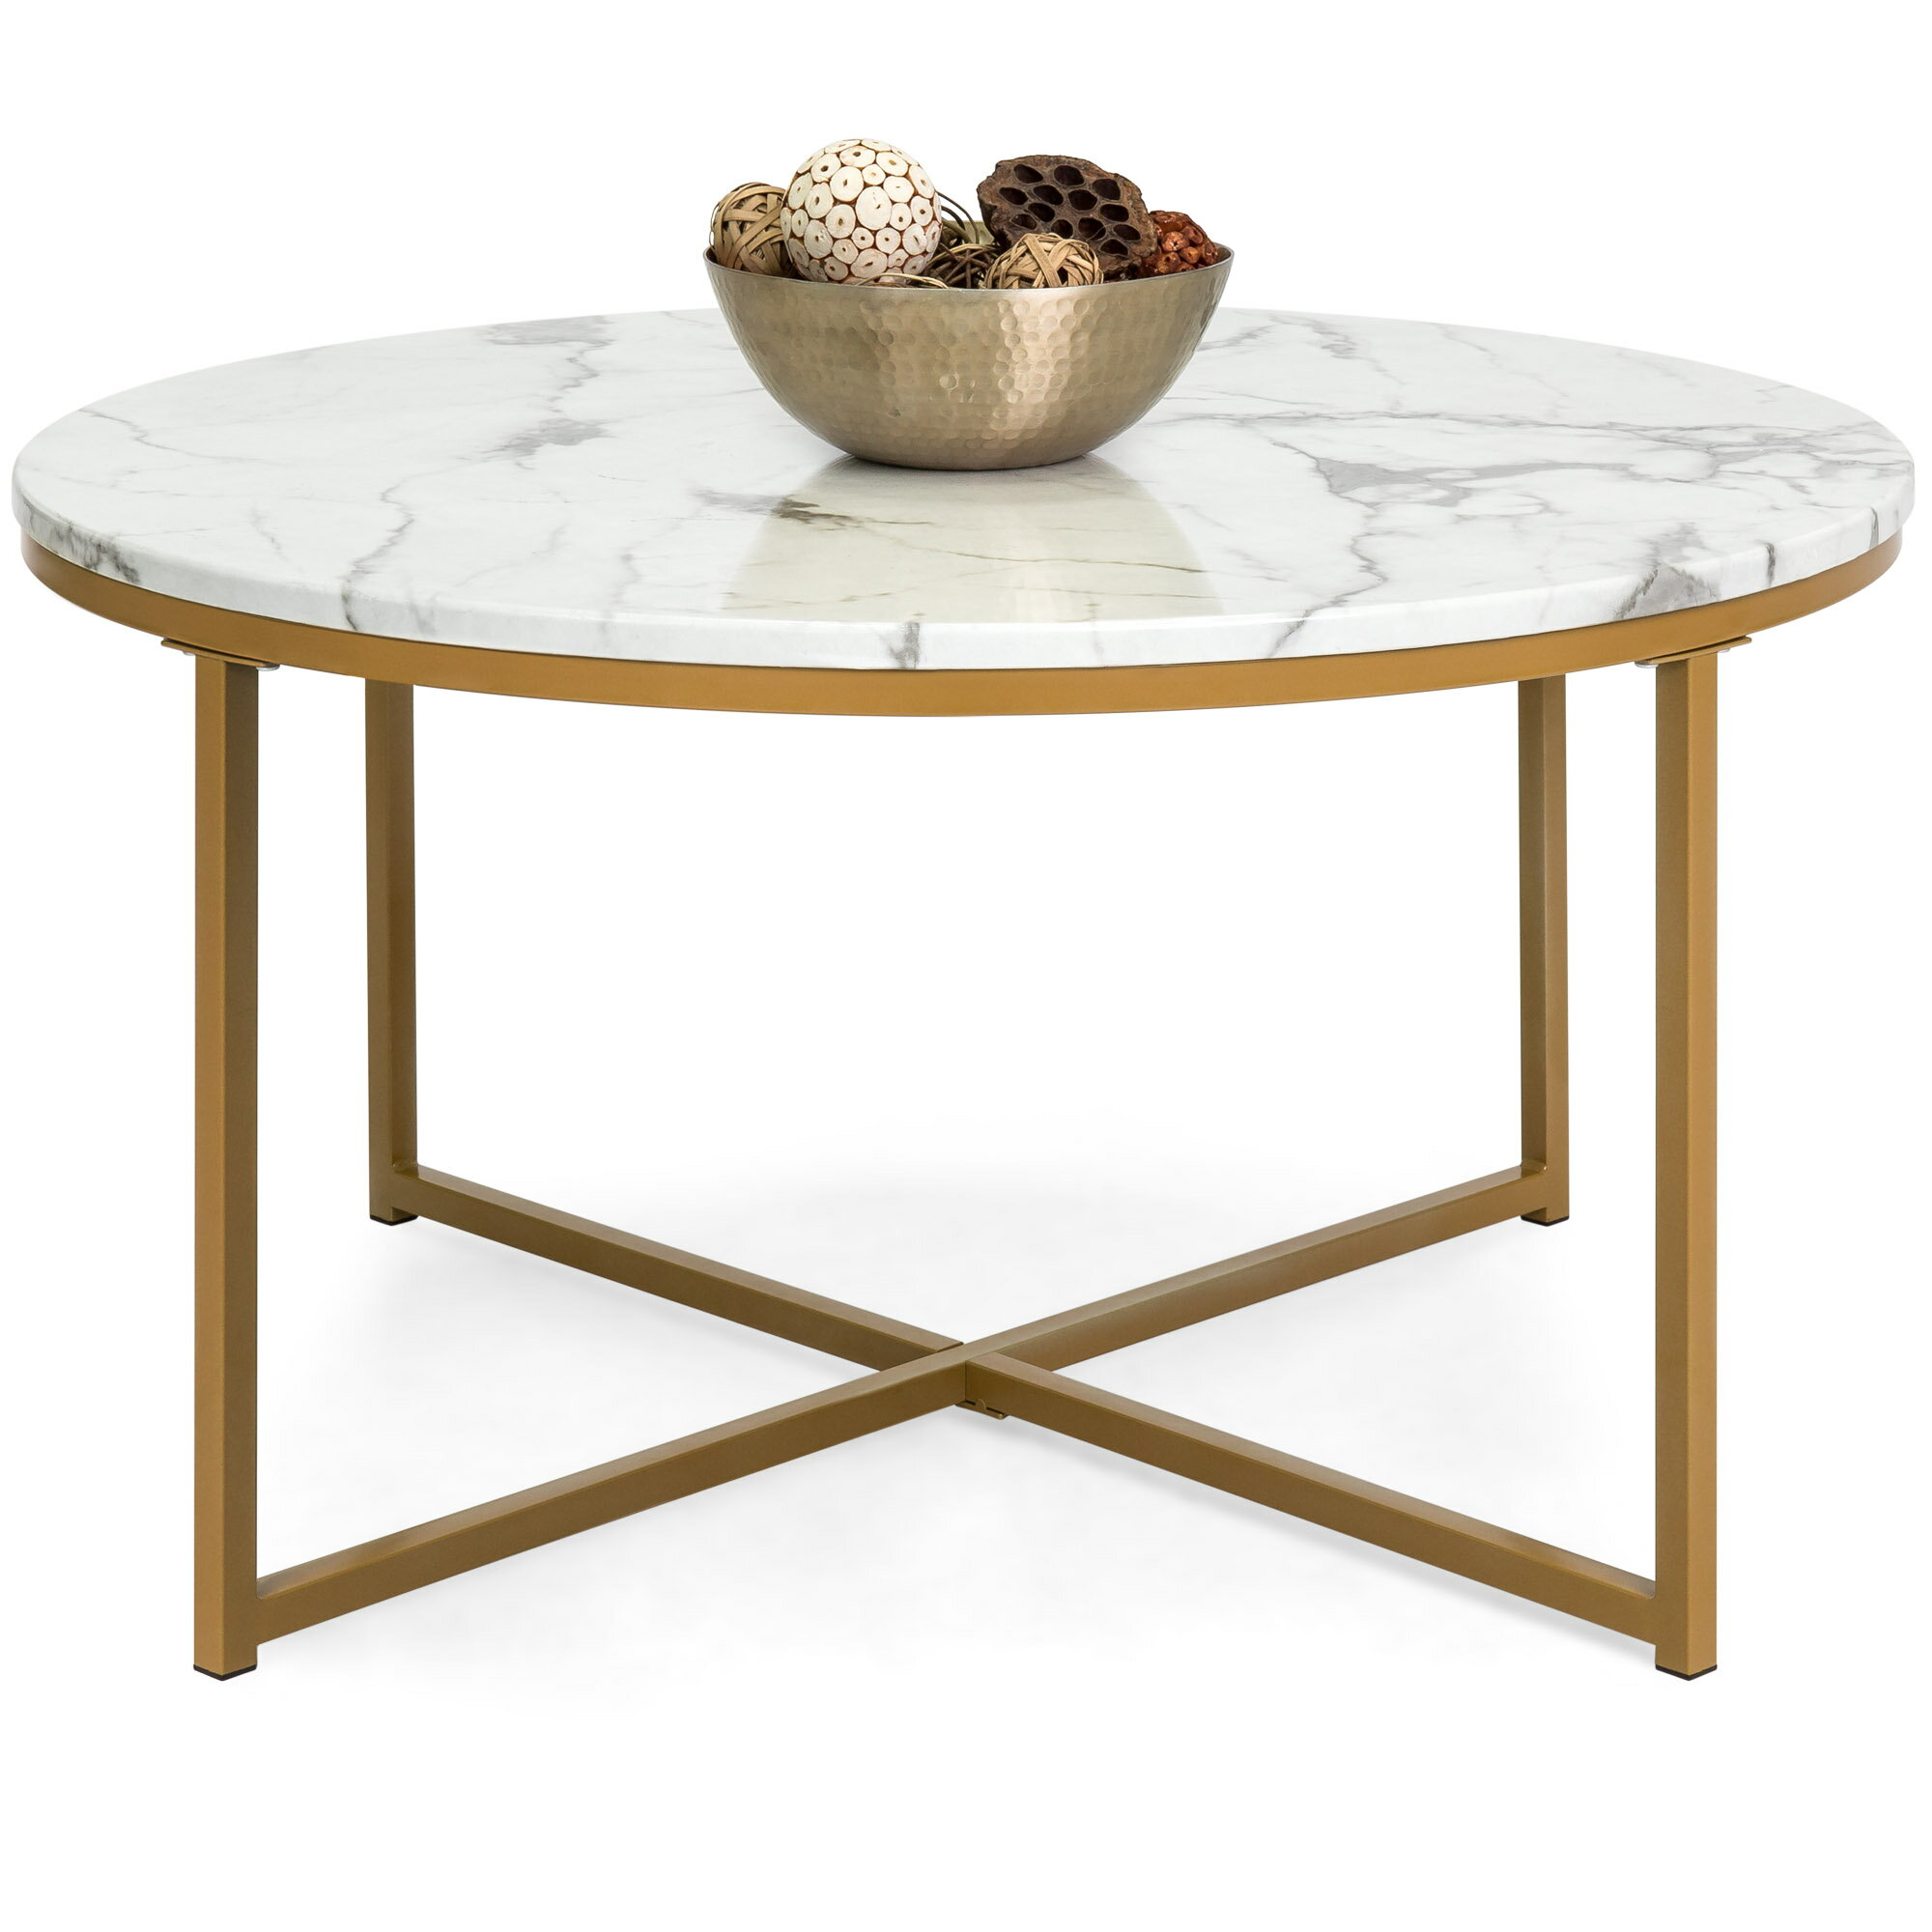 Best Choice Products 36in Faux Marble Modern Living Room Round Accent Side Coffee Table W Metal Frame White Bronze Gold